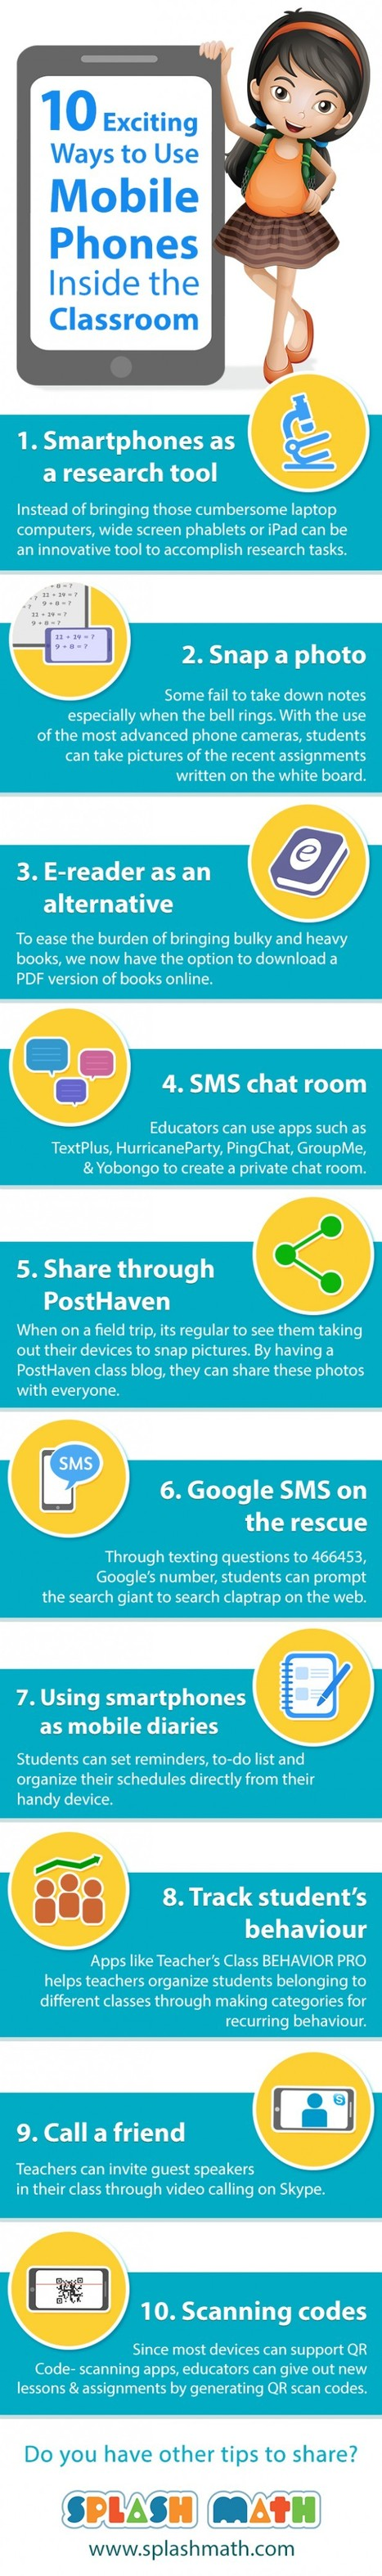 10 Exciting Ways to Use Mobile Phones In the Classroom Infographic | e-Learning Infographics | Always eLearning | Scoop.it